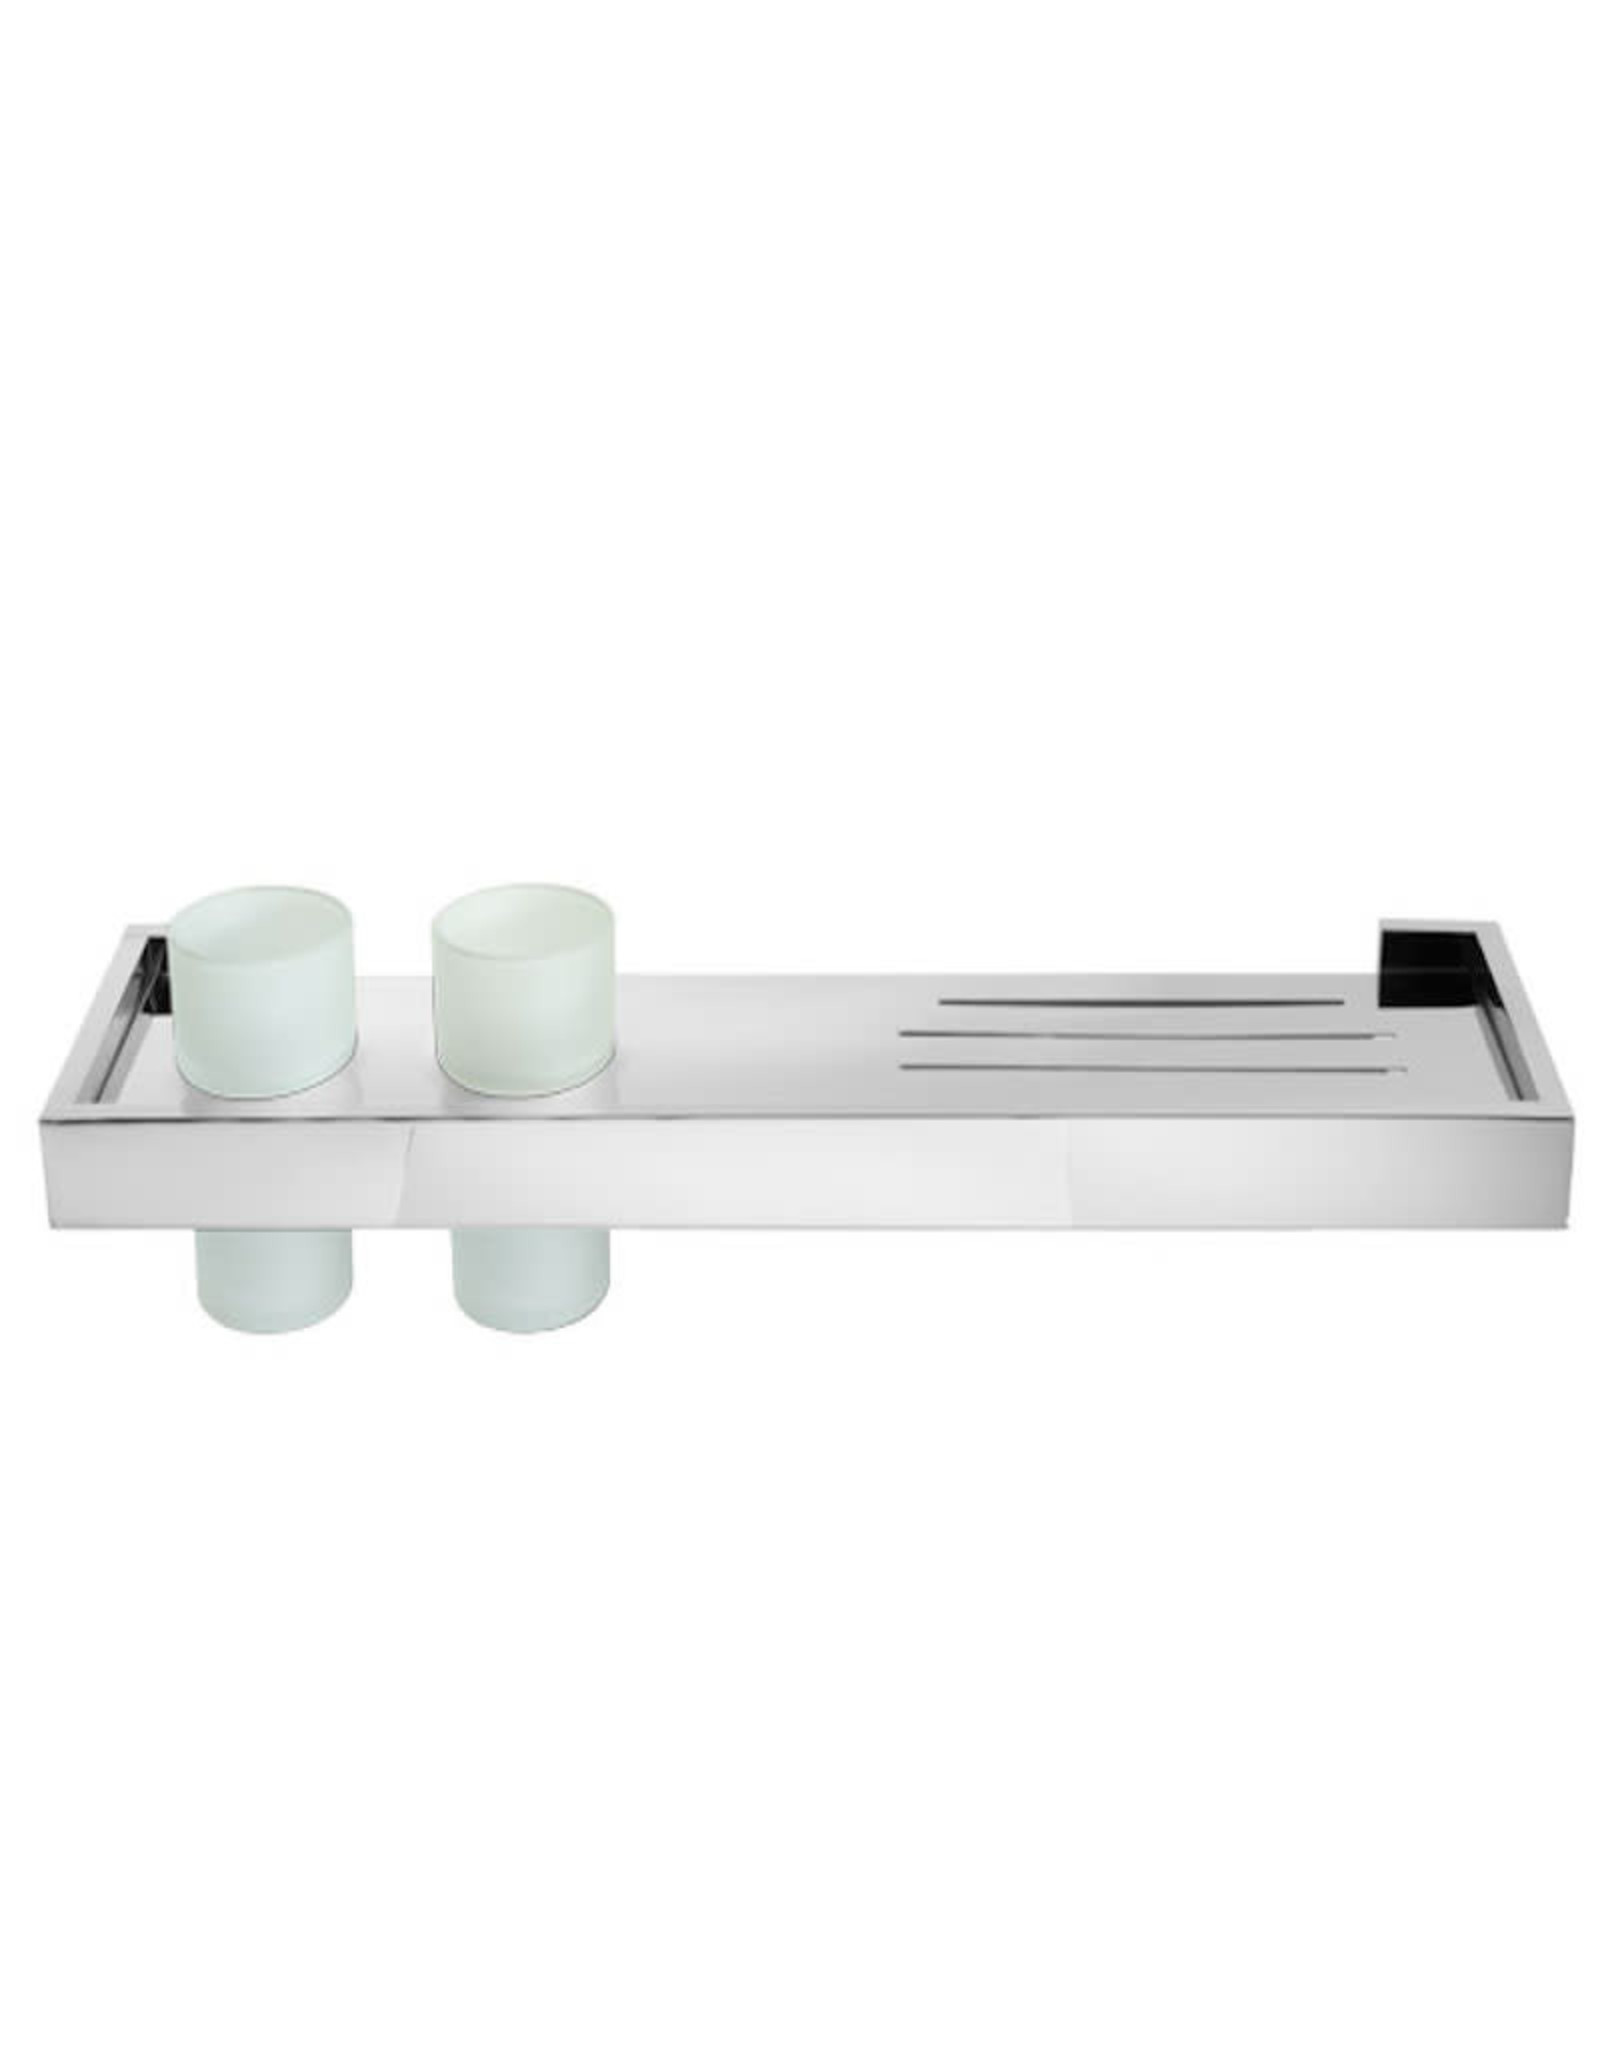 Laloo Stainless Shelf w/ Drainage and 2 Dispenser Pumps- Chrome